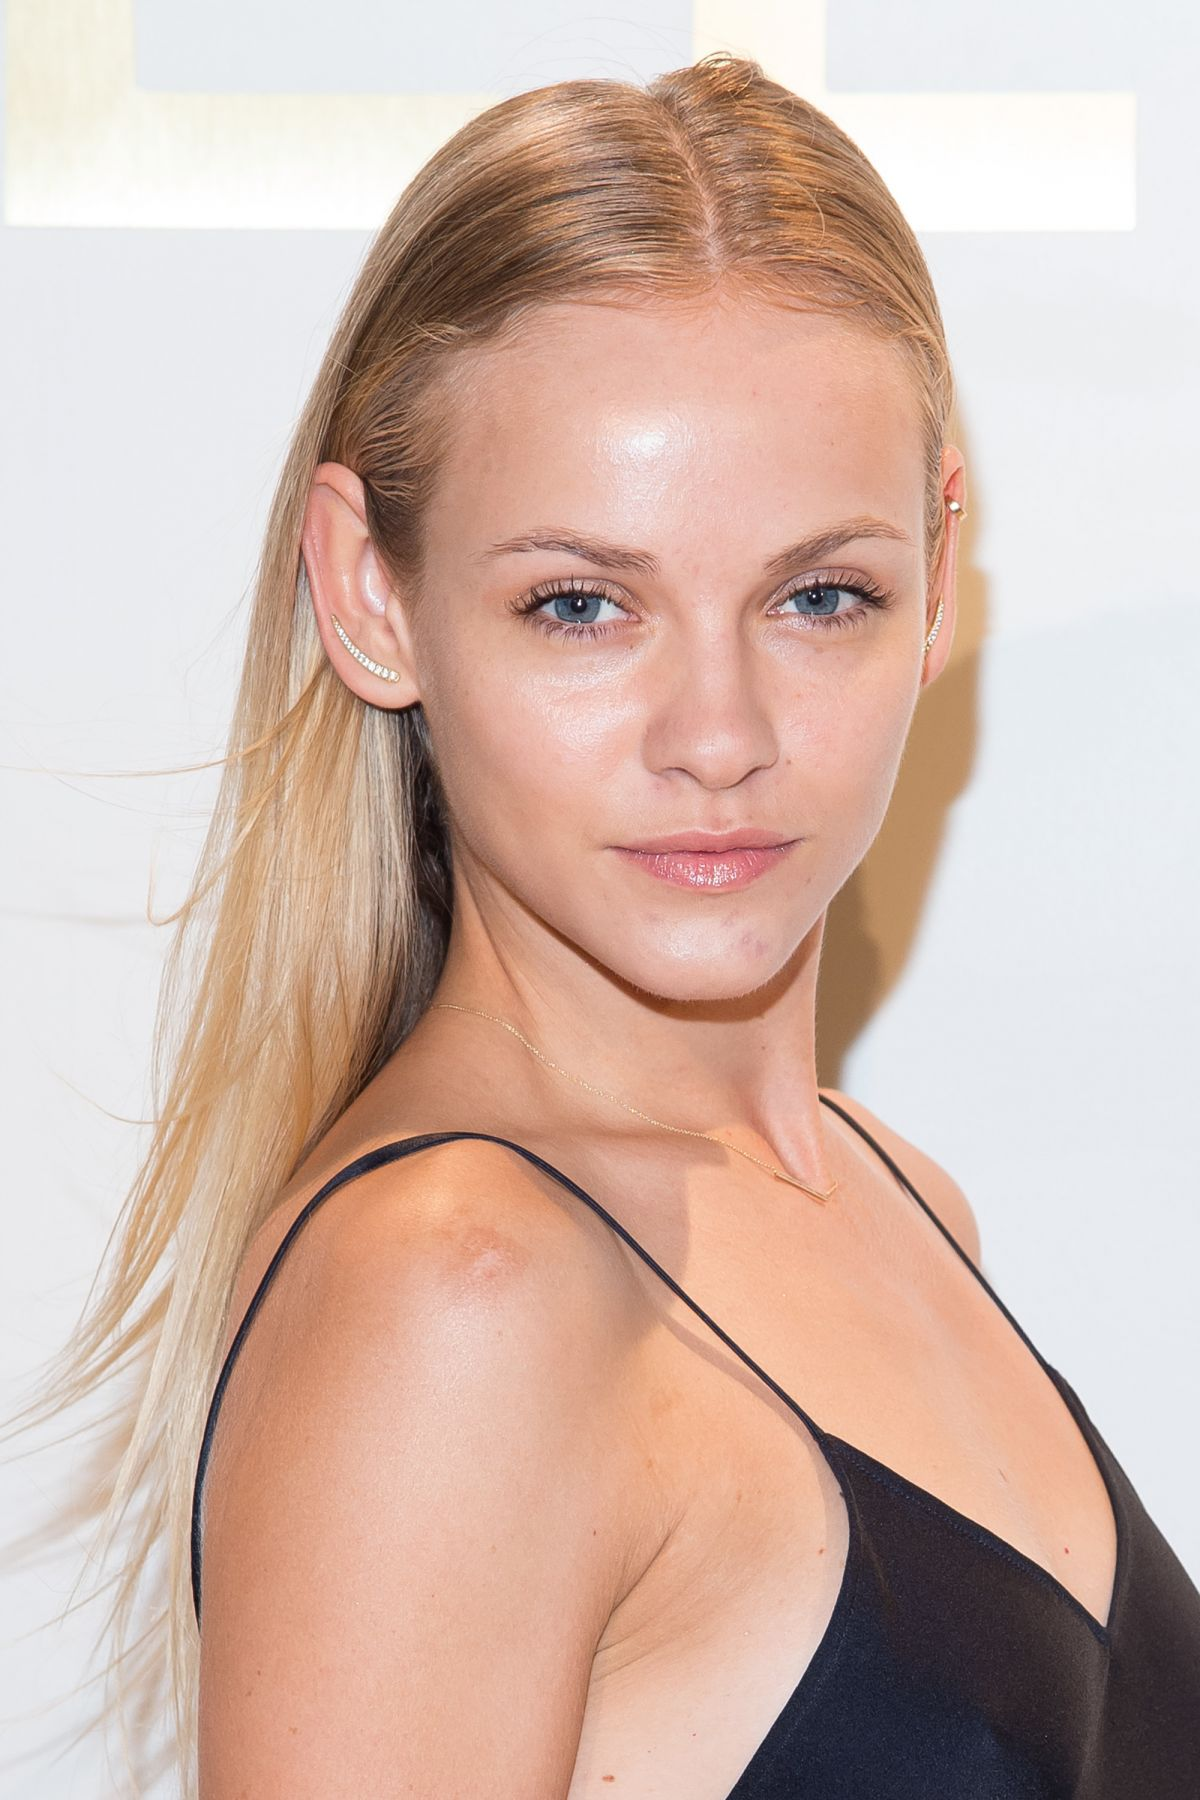 Ginta Lapina LVA nude (76 foto and video), Ass, Hot, Boobs, braless 2020